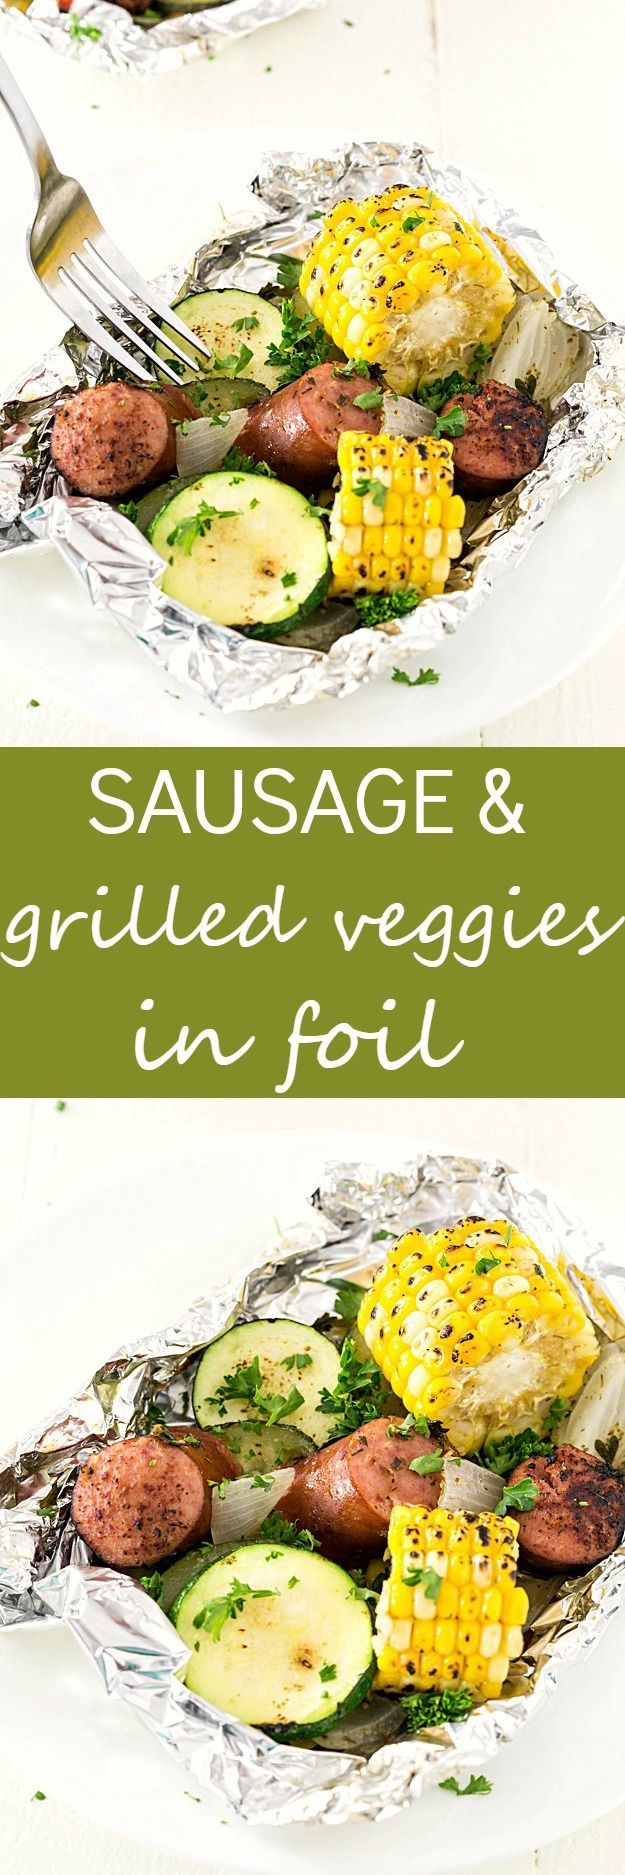 Kielbasa Sausage & Grilled Vegetables in Foil - These foil packets are so quick to assemble! Perfect for camping or a quick dinner.